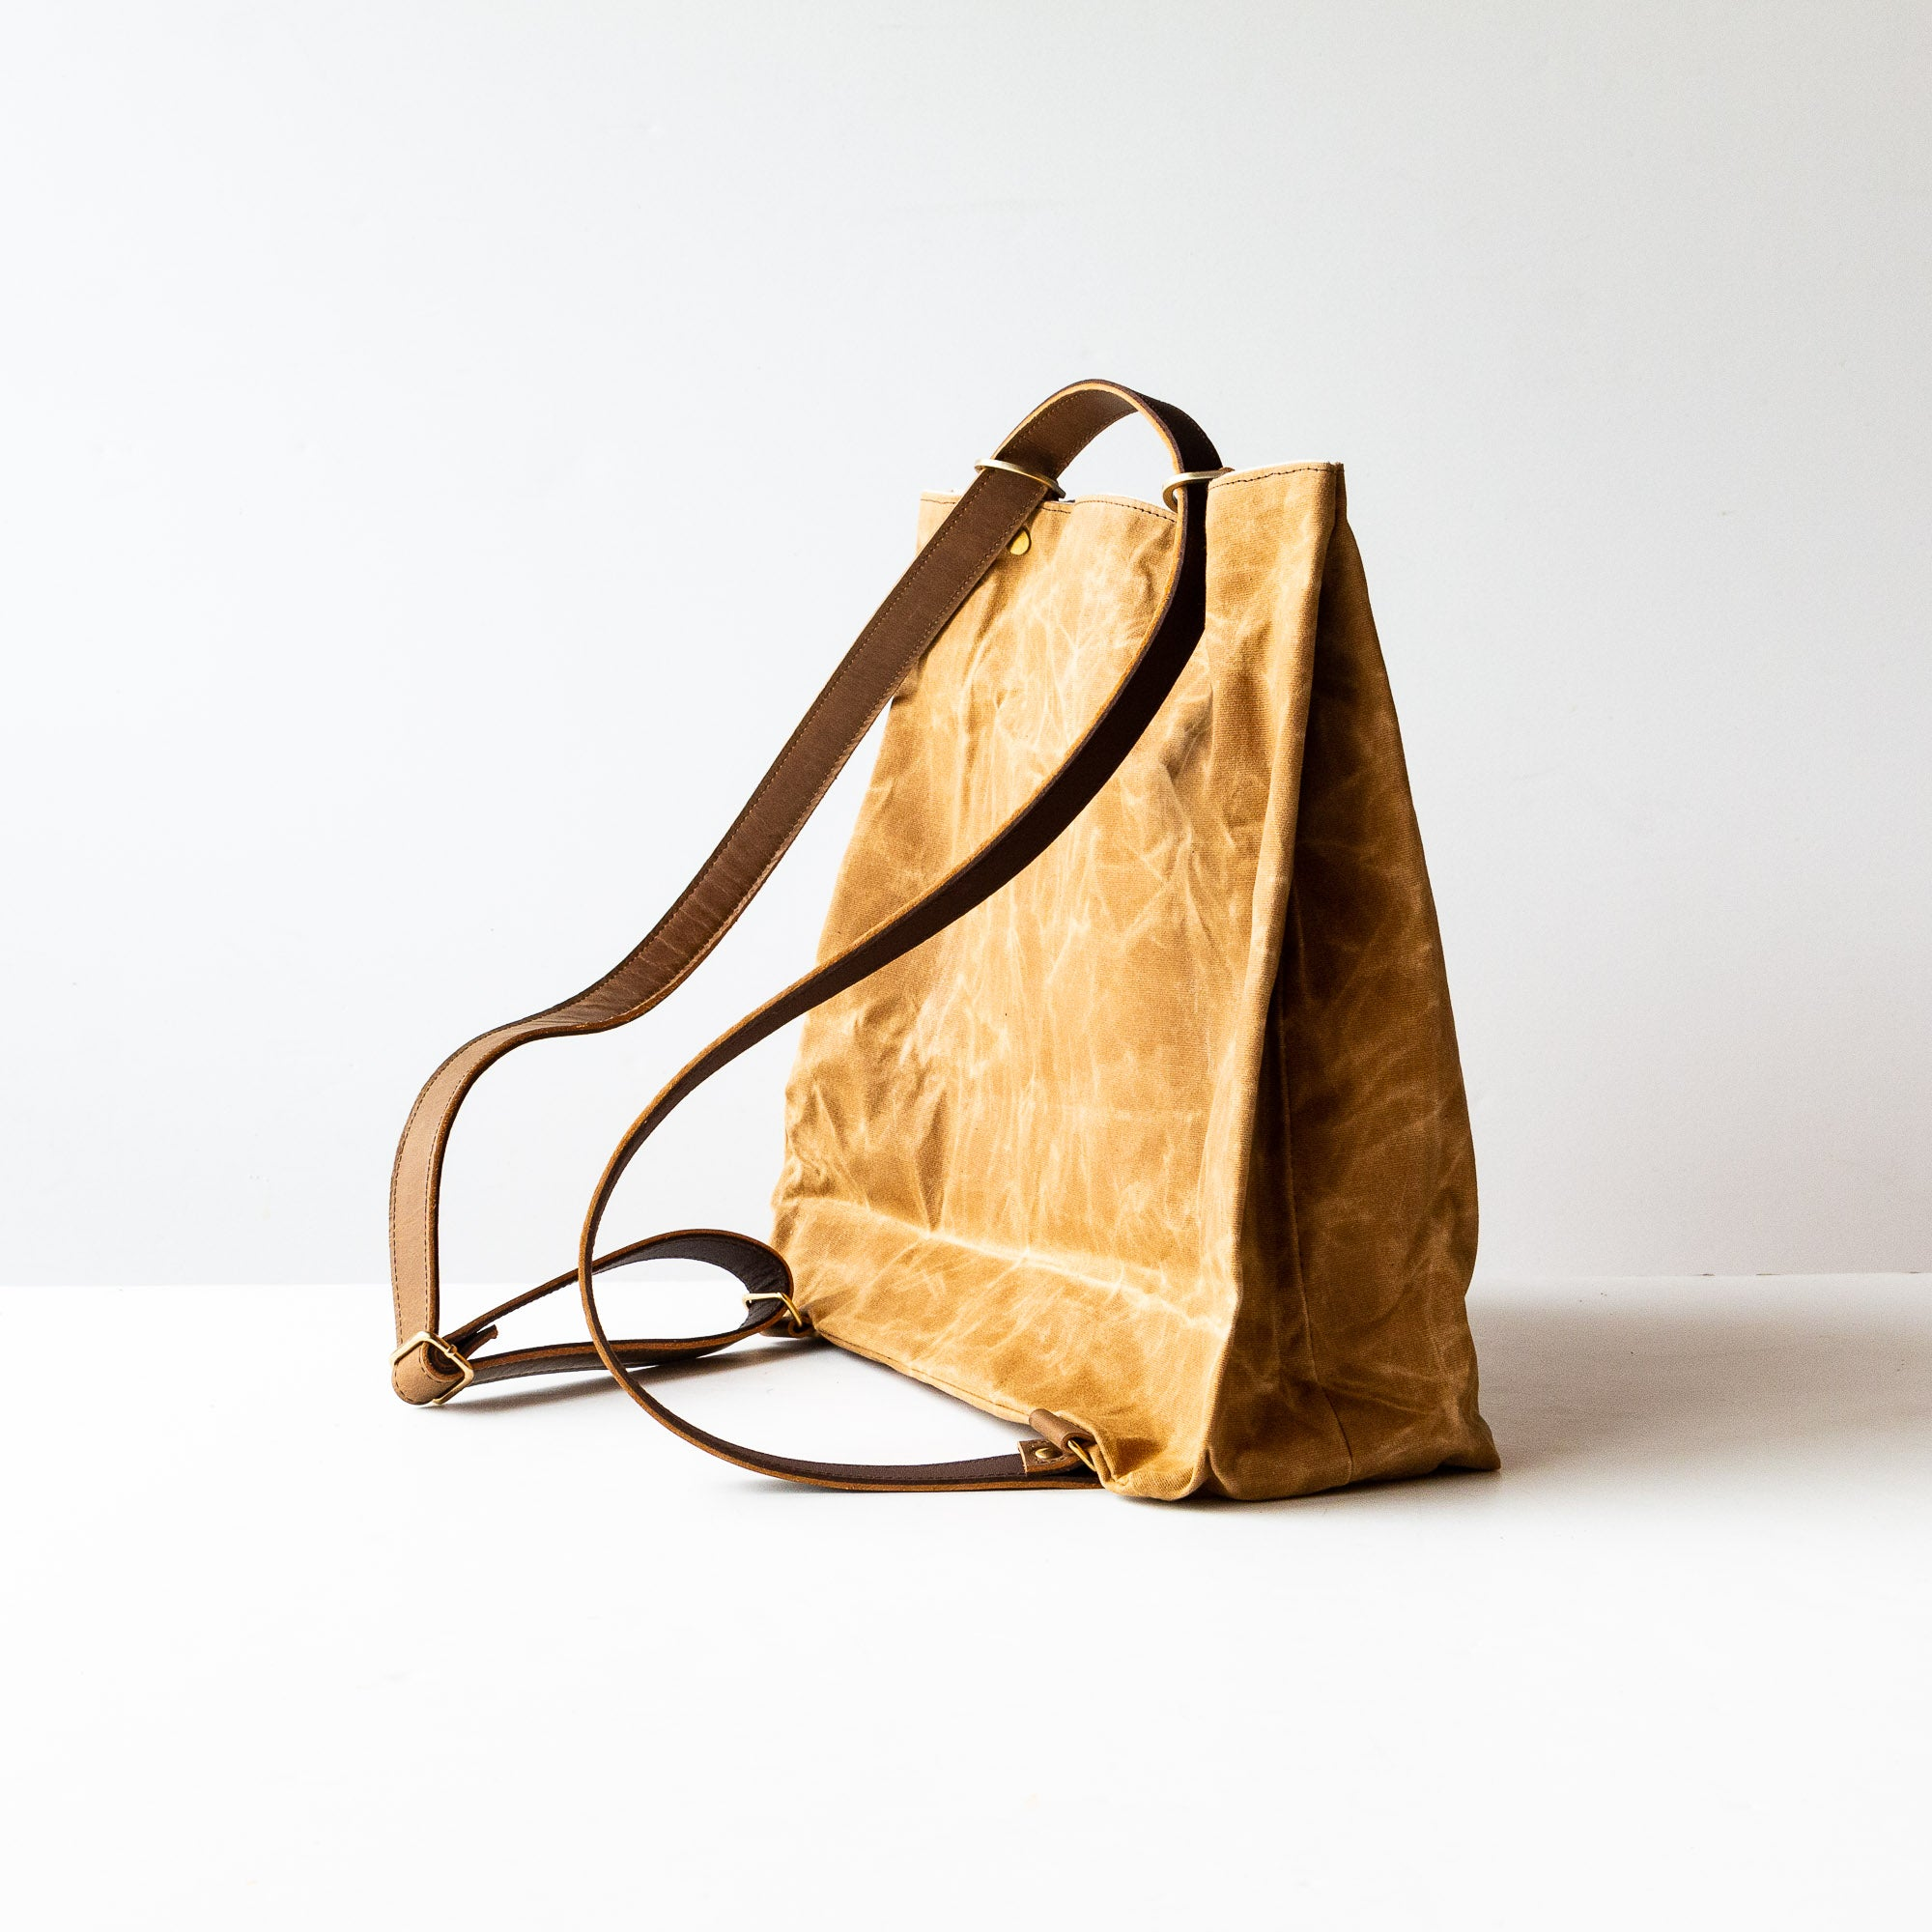 Masson - Large Tote Bag / Backpack - Sold by Chic & Basta